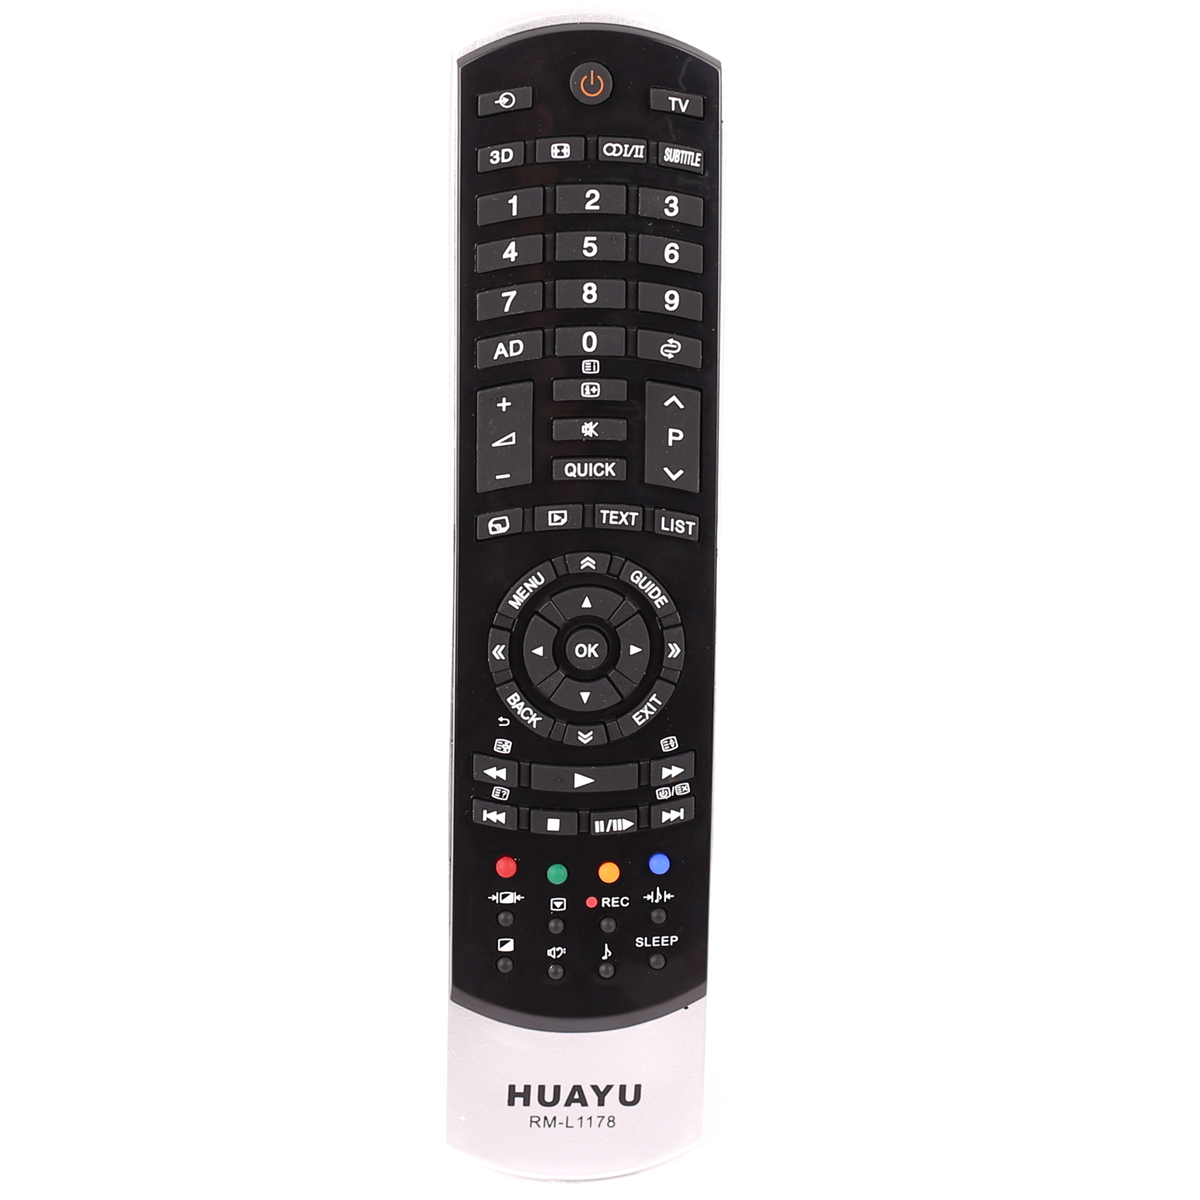 Suitable for Toshiba TV Remote Control Controller CT-90388 32RL933 32TL933 40RL933 40TL933 And More Model CT-90367 huayu